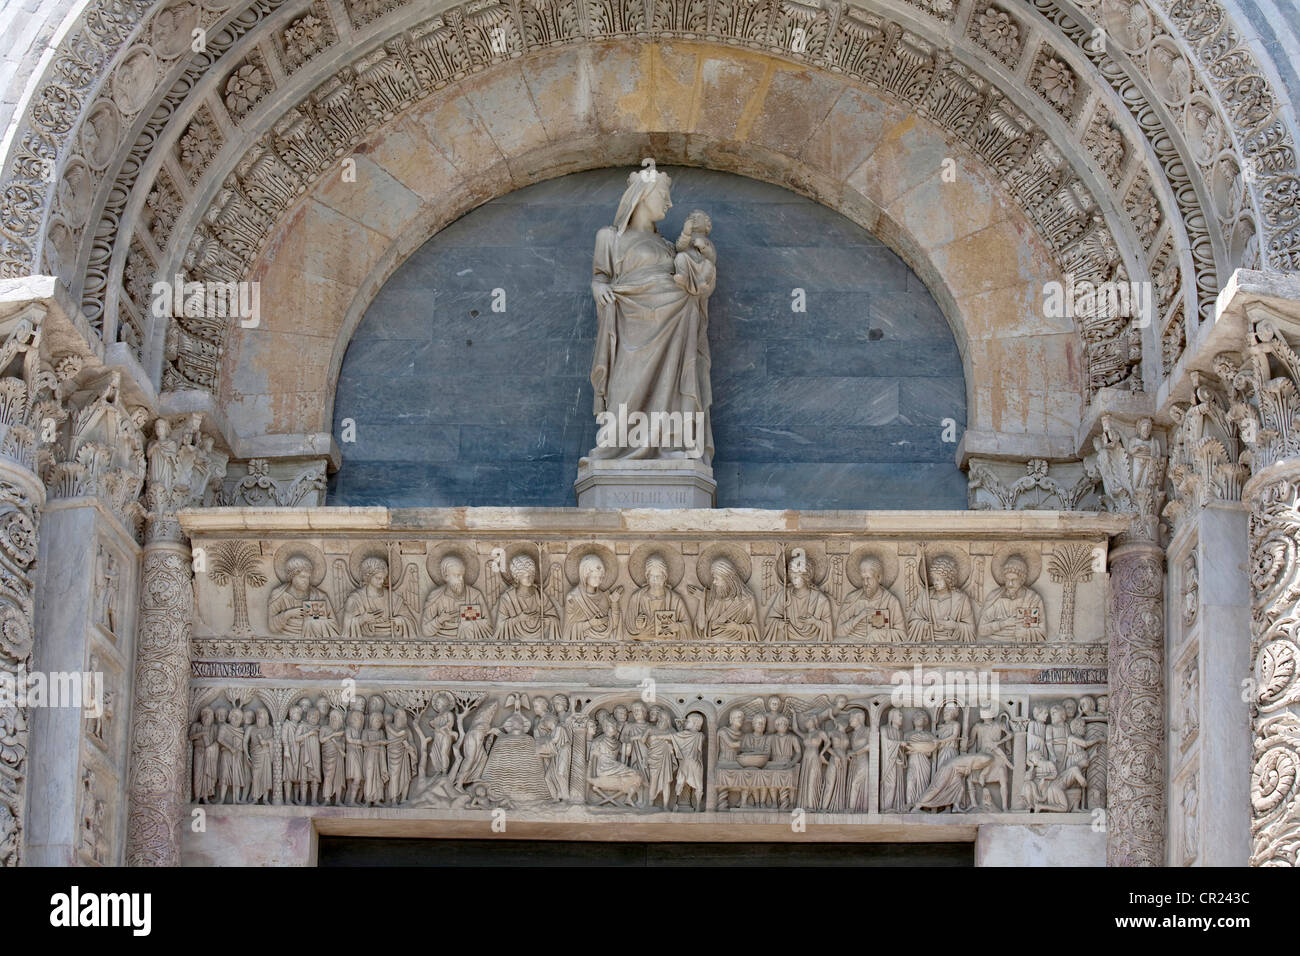 Statue and relief carvings in archway - Stock Image